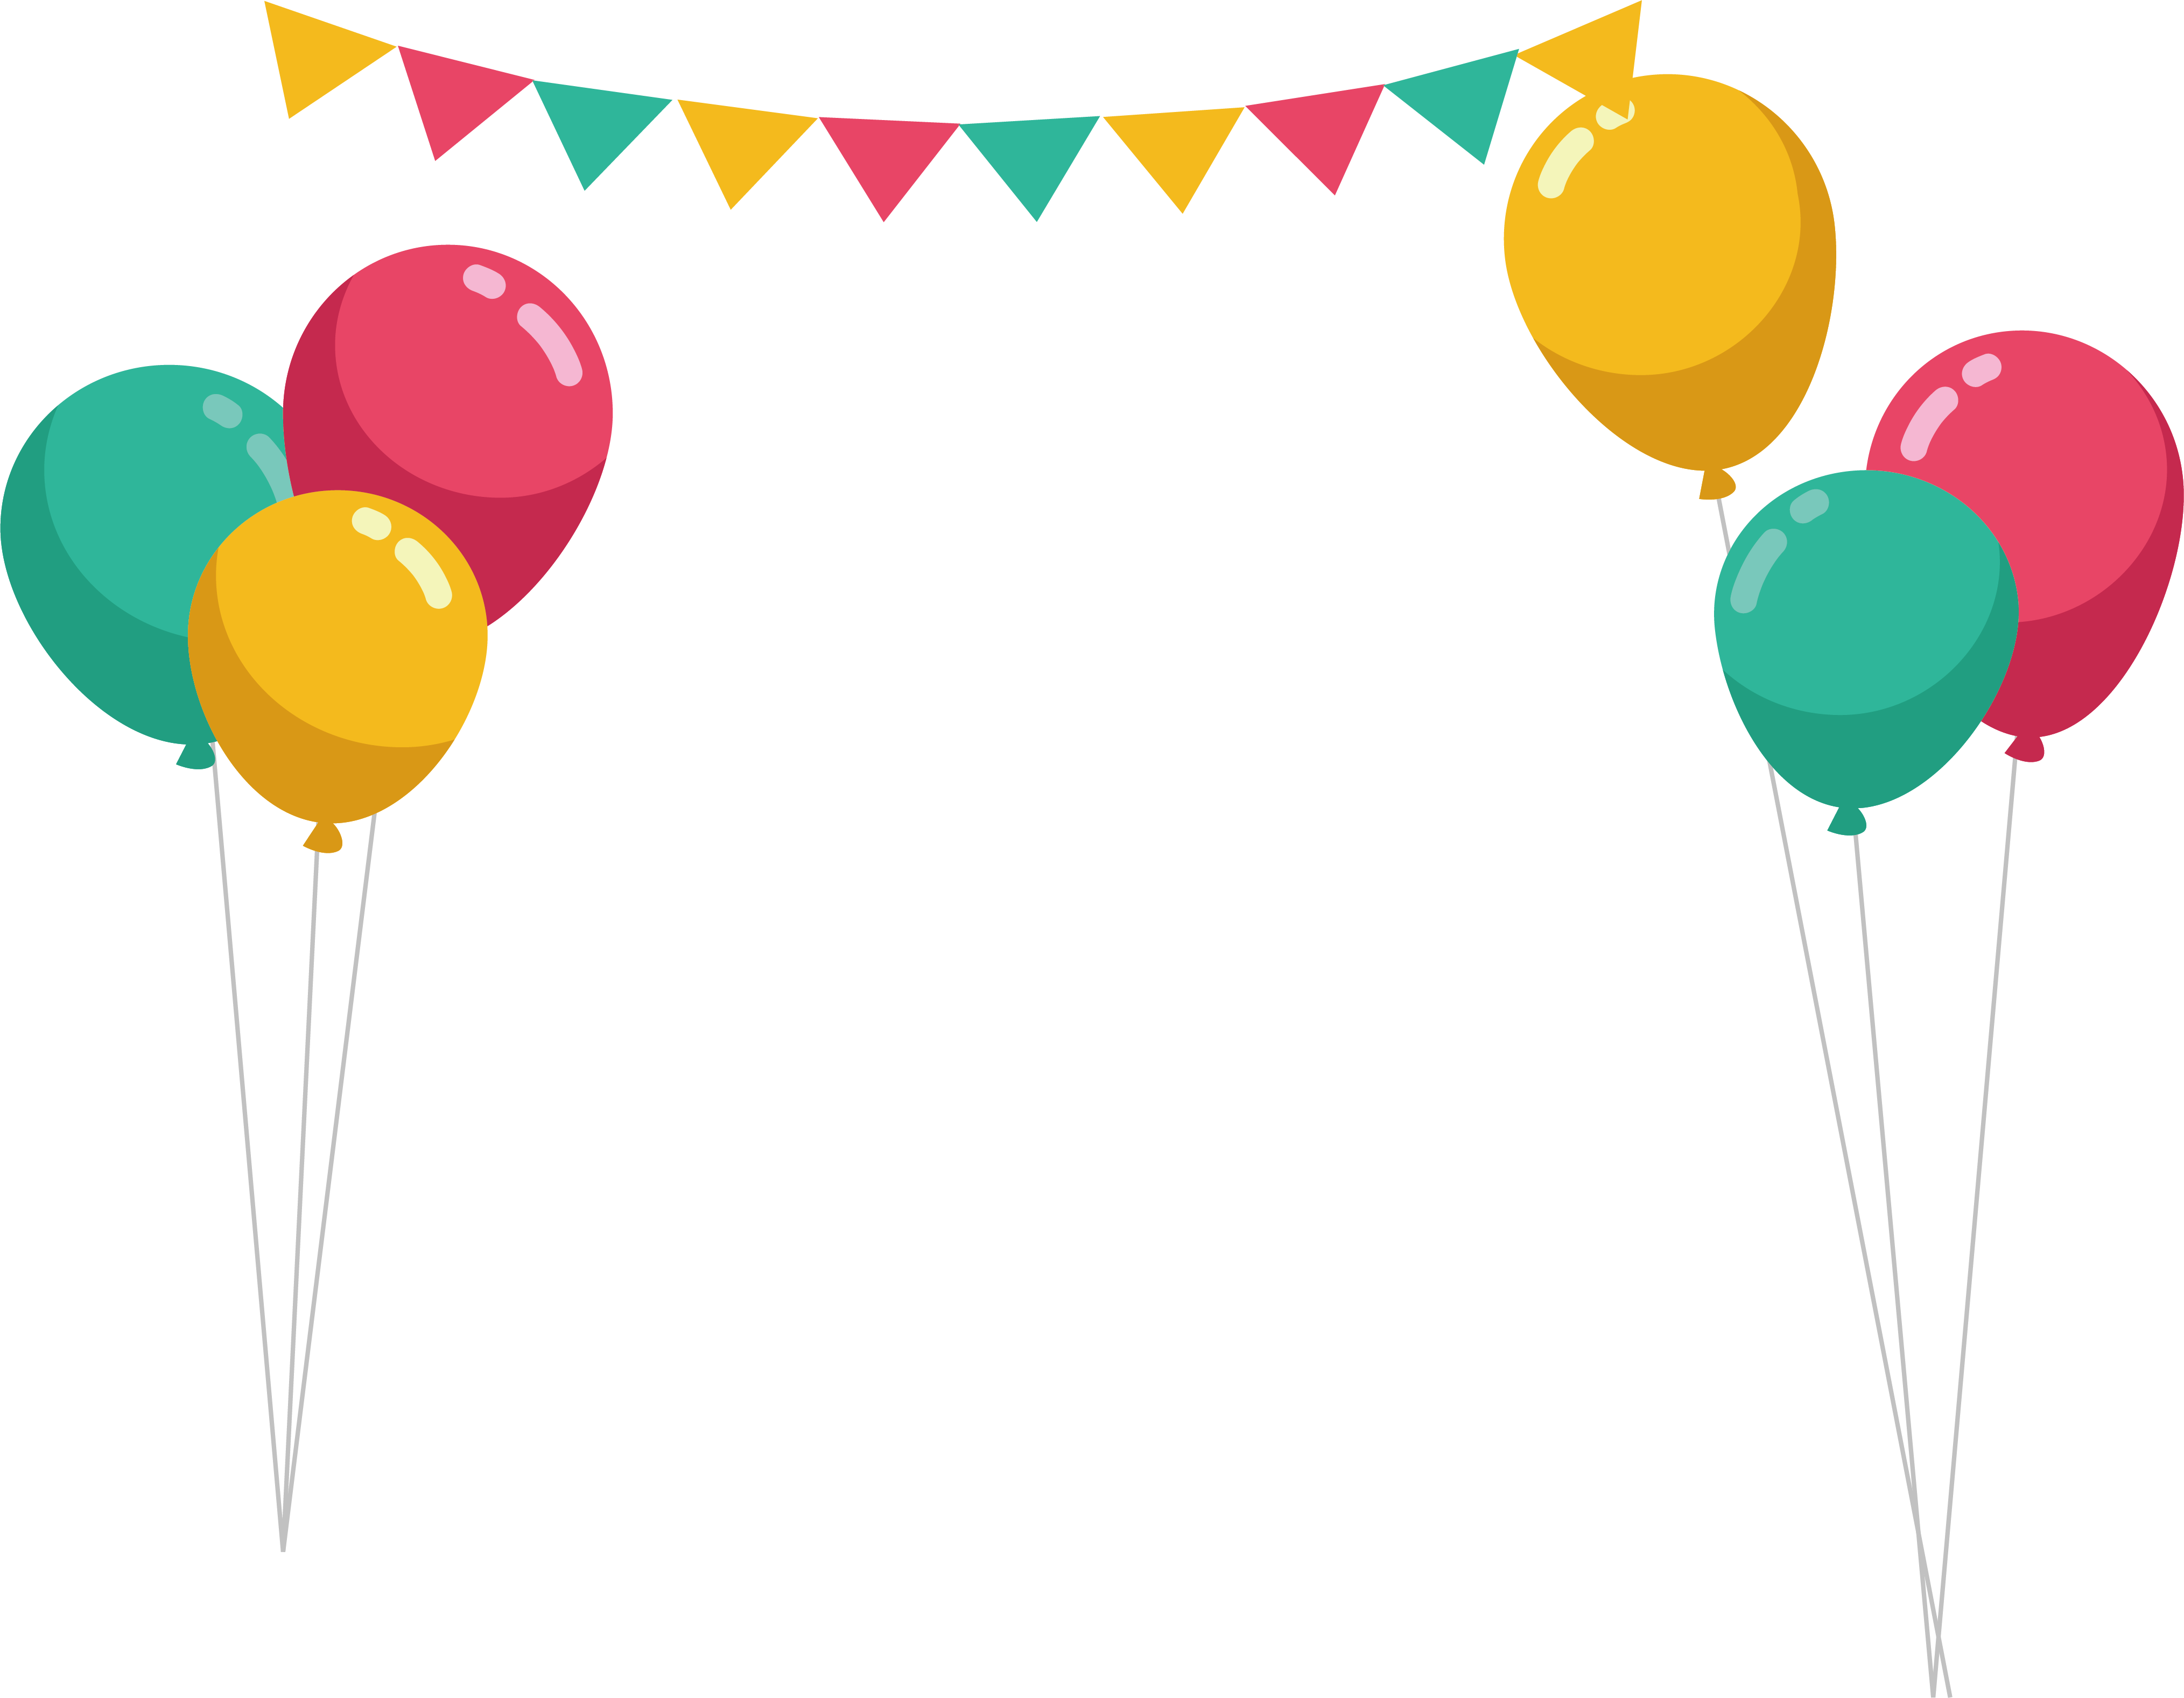 Party frame png. Balloon birthday color beam